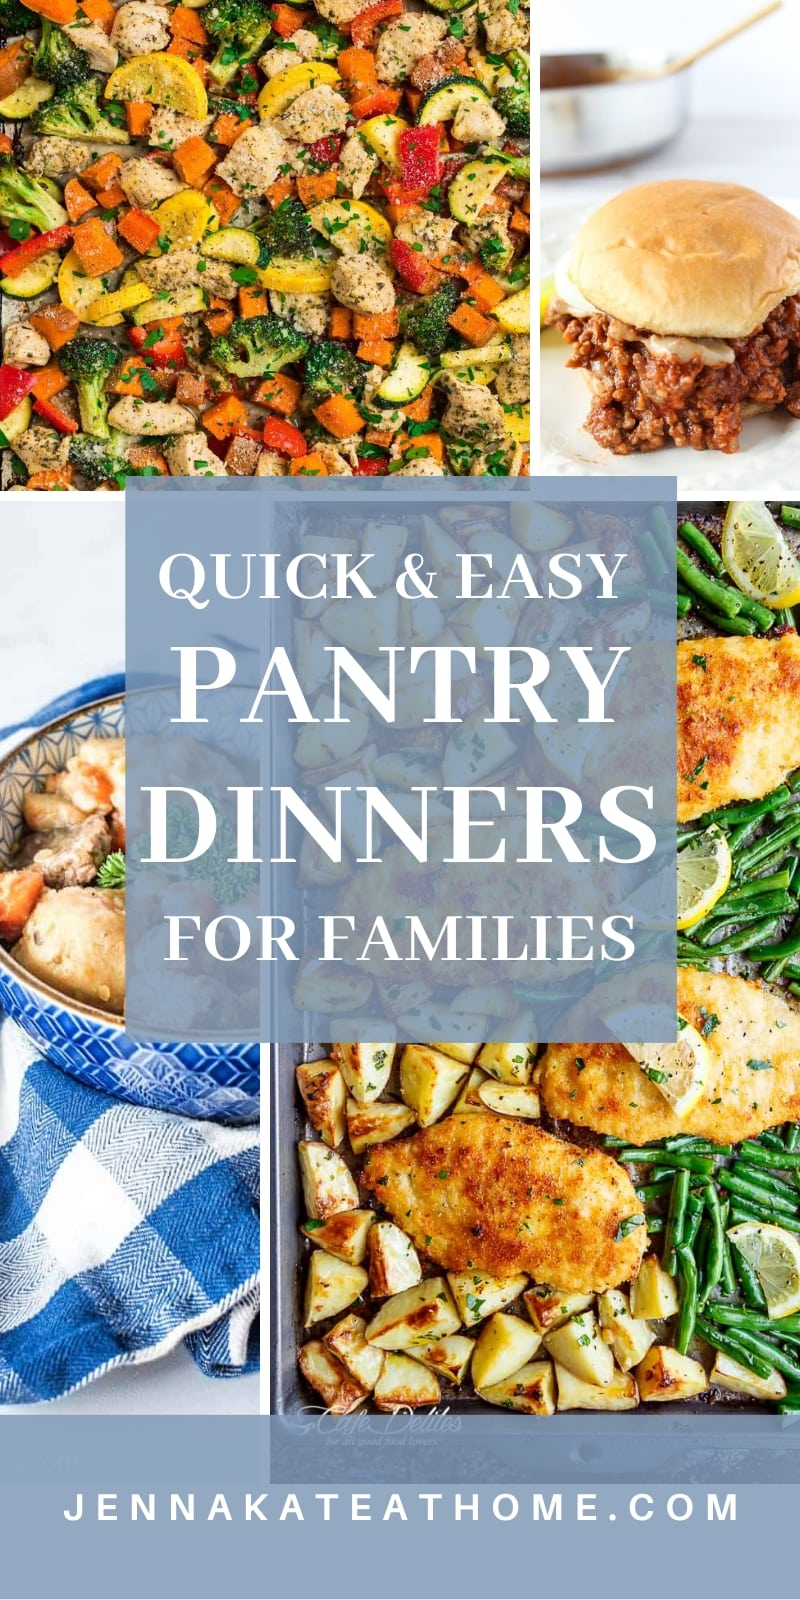 Easy pantry meals for families that are kid and adult approved! Can be made quickly with staple ingredients from your fridge and pantry.